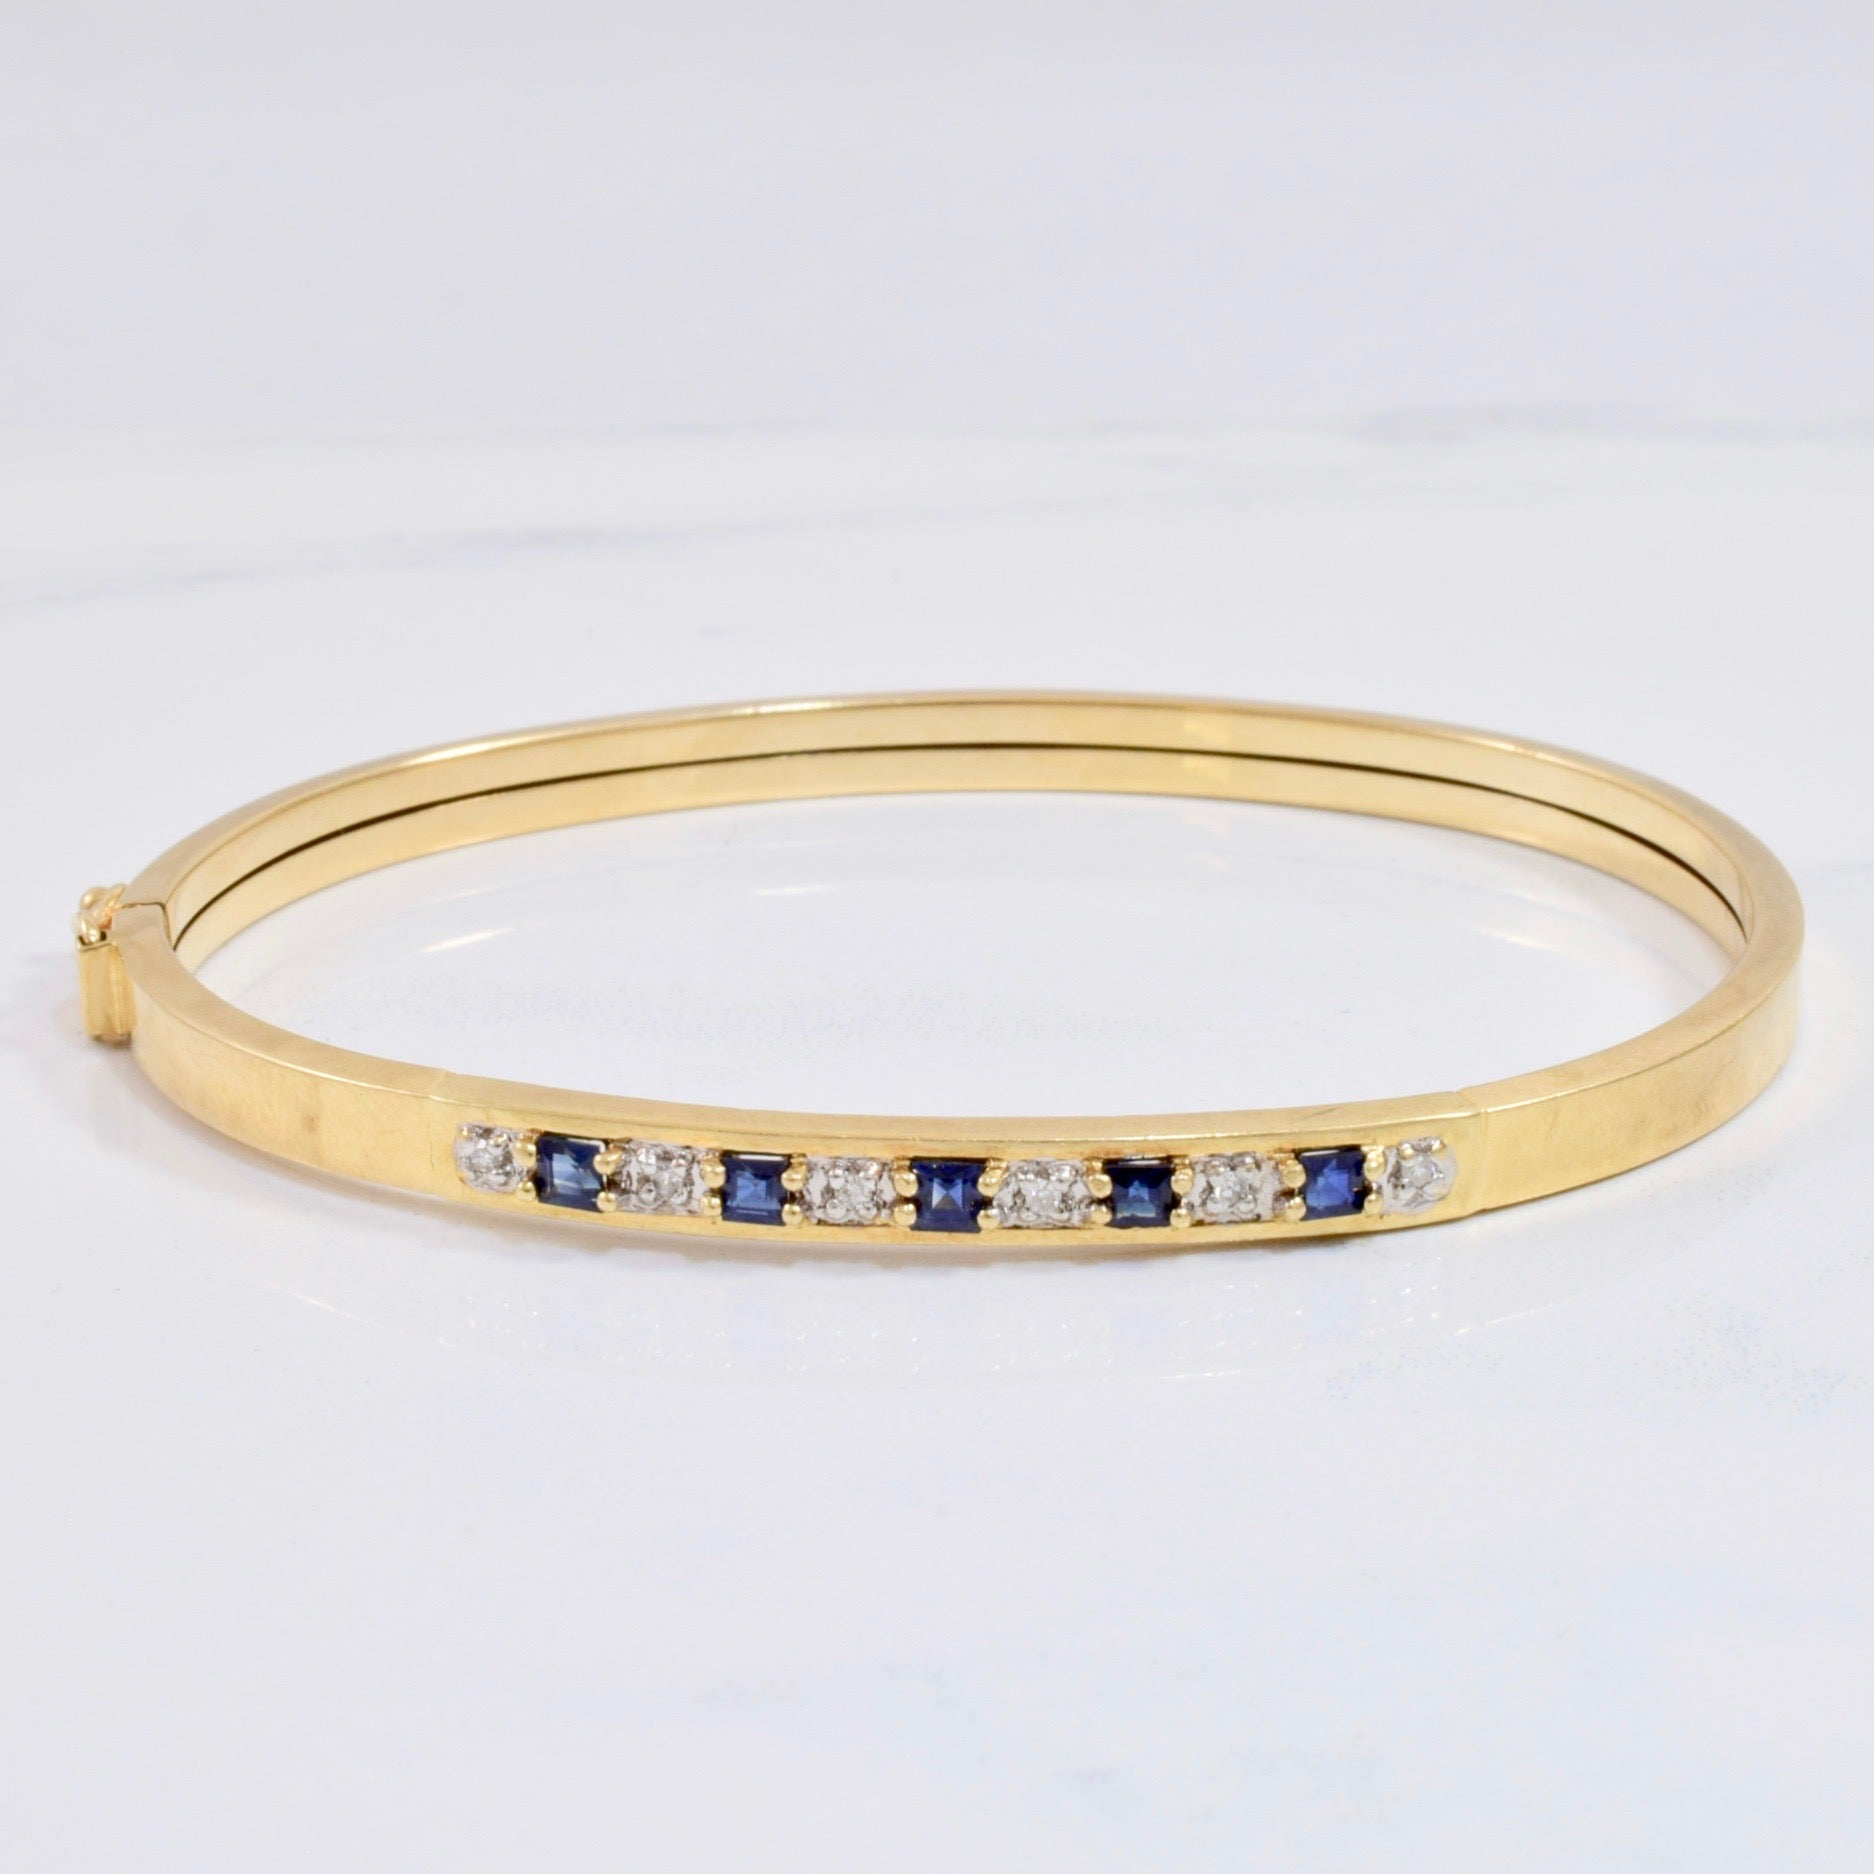 Sapphire and Diamond Bangle | 0.06 ctw SZ 8"